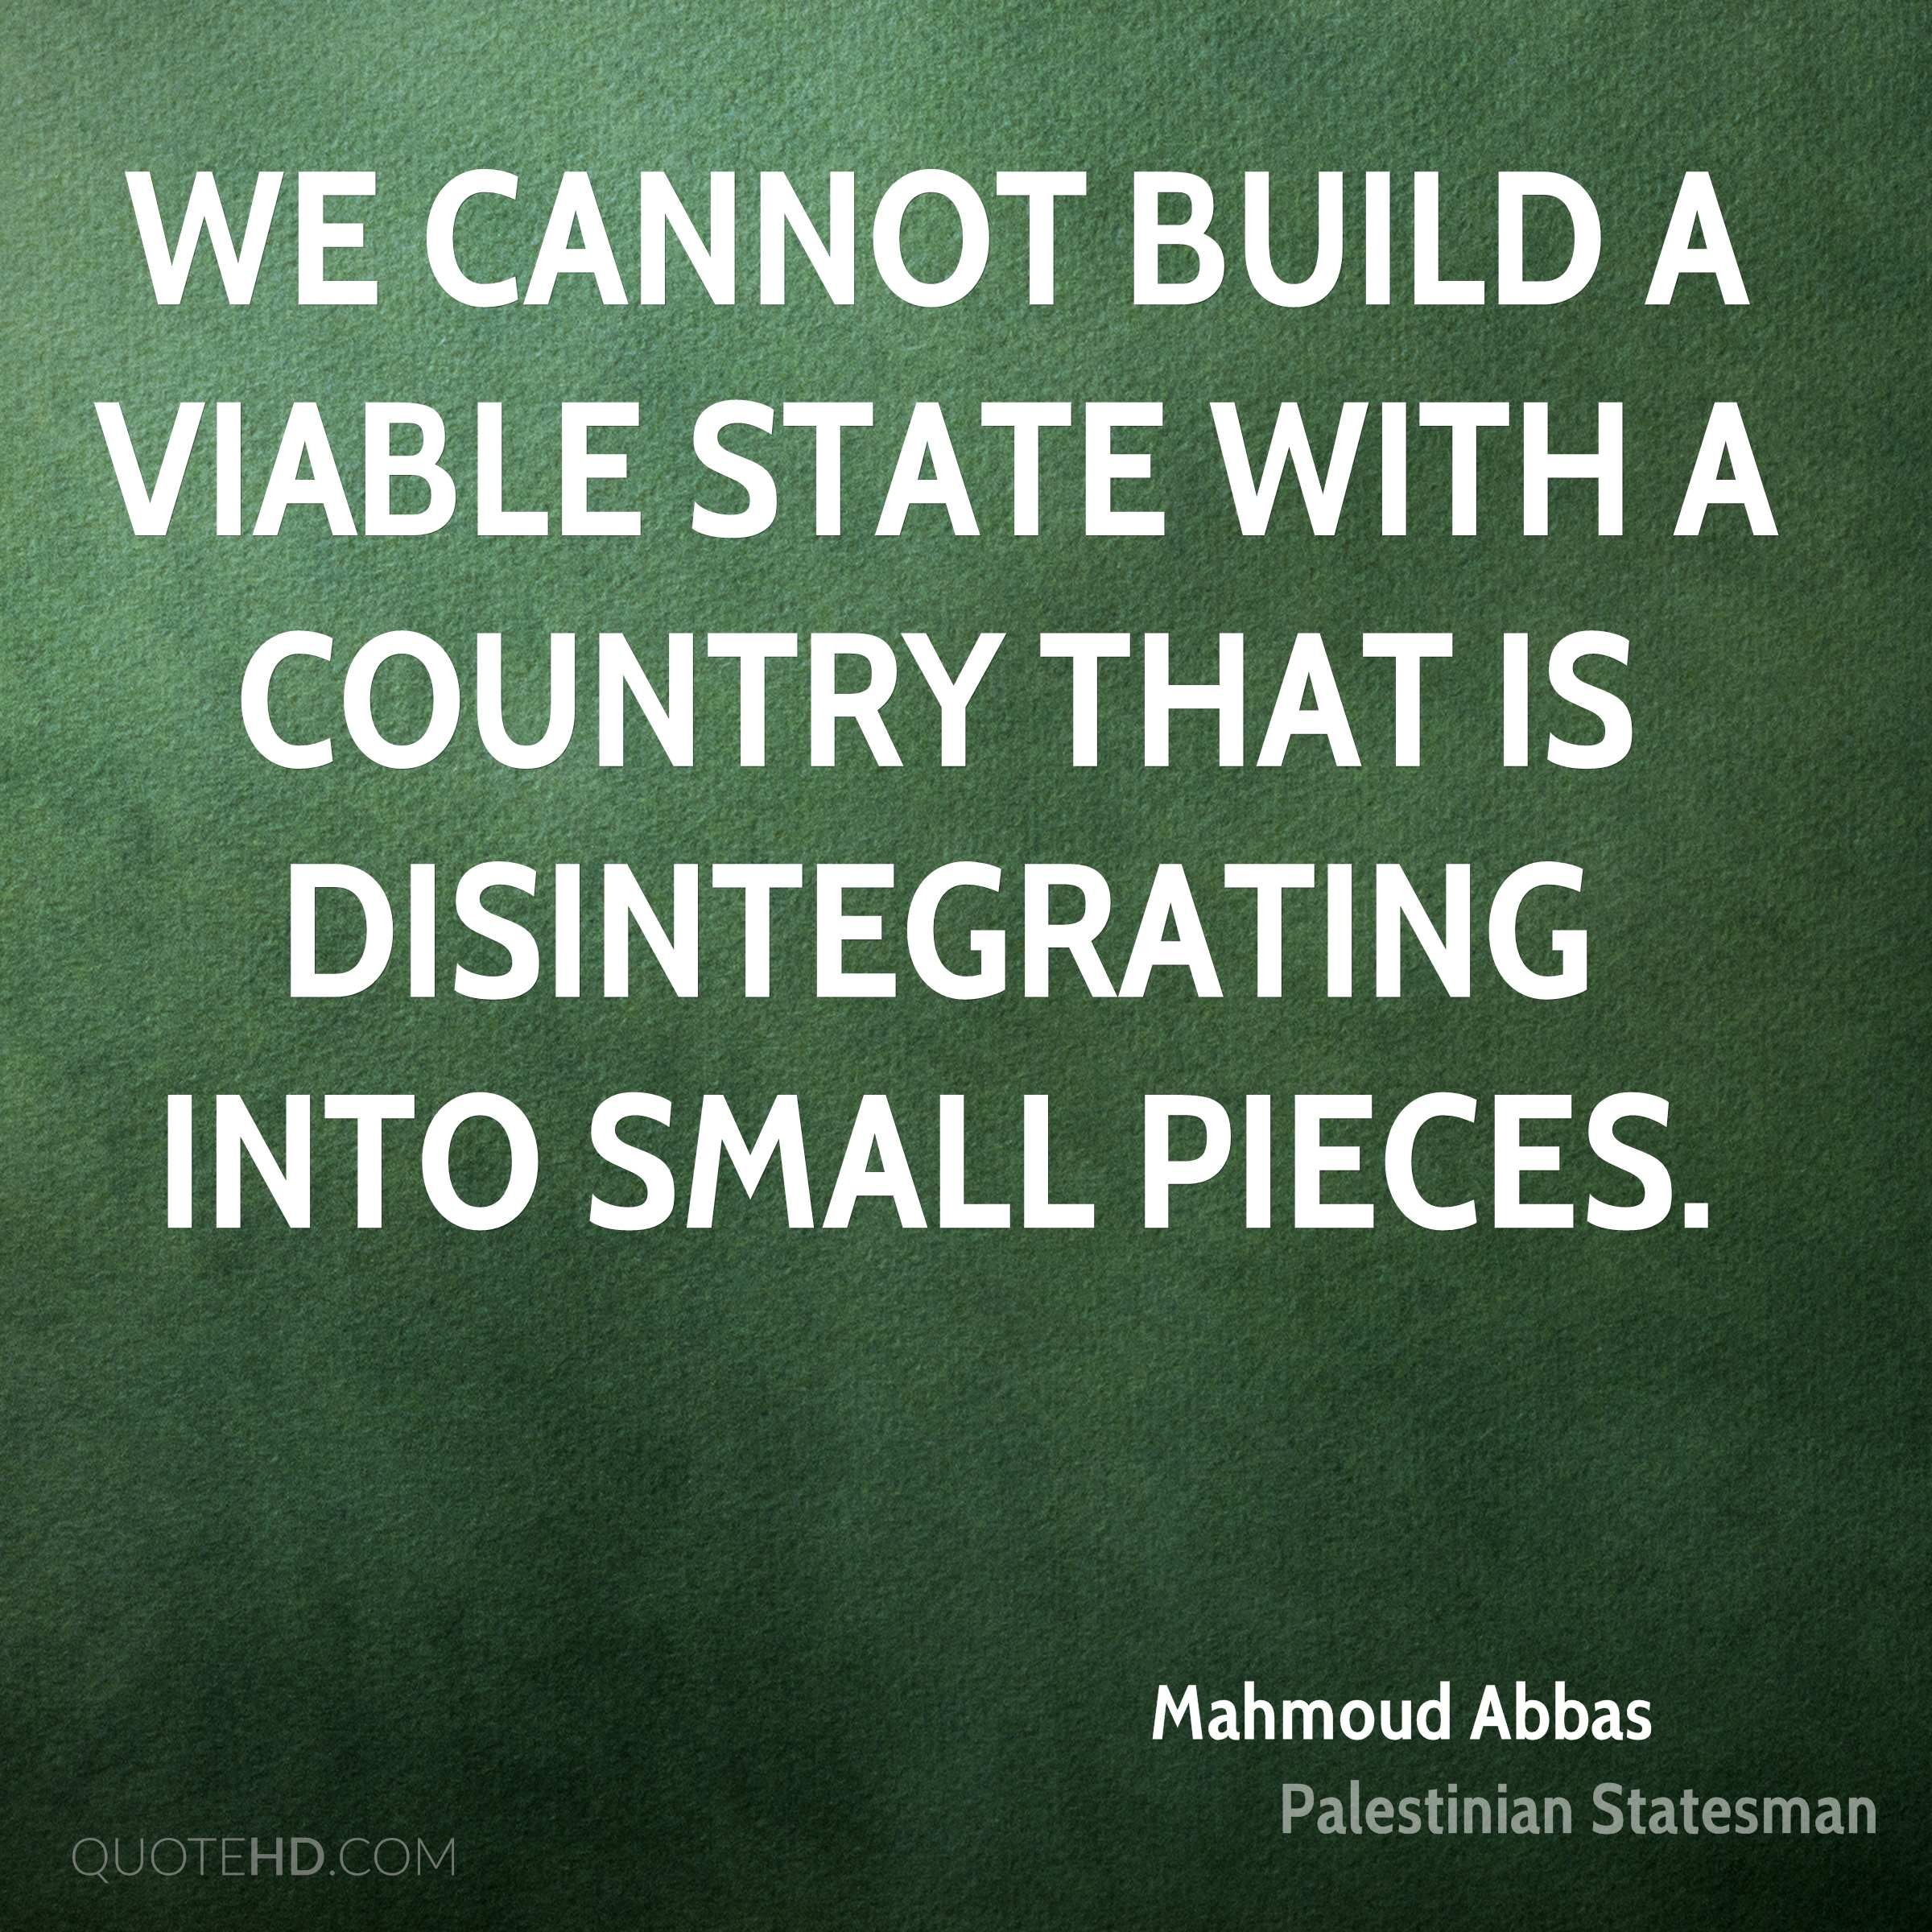 We cannot build a viable state with a country that is disintegrating into small pieces.